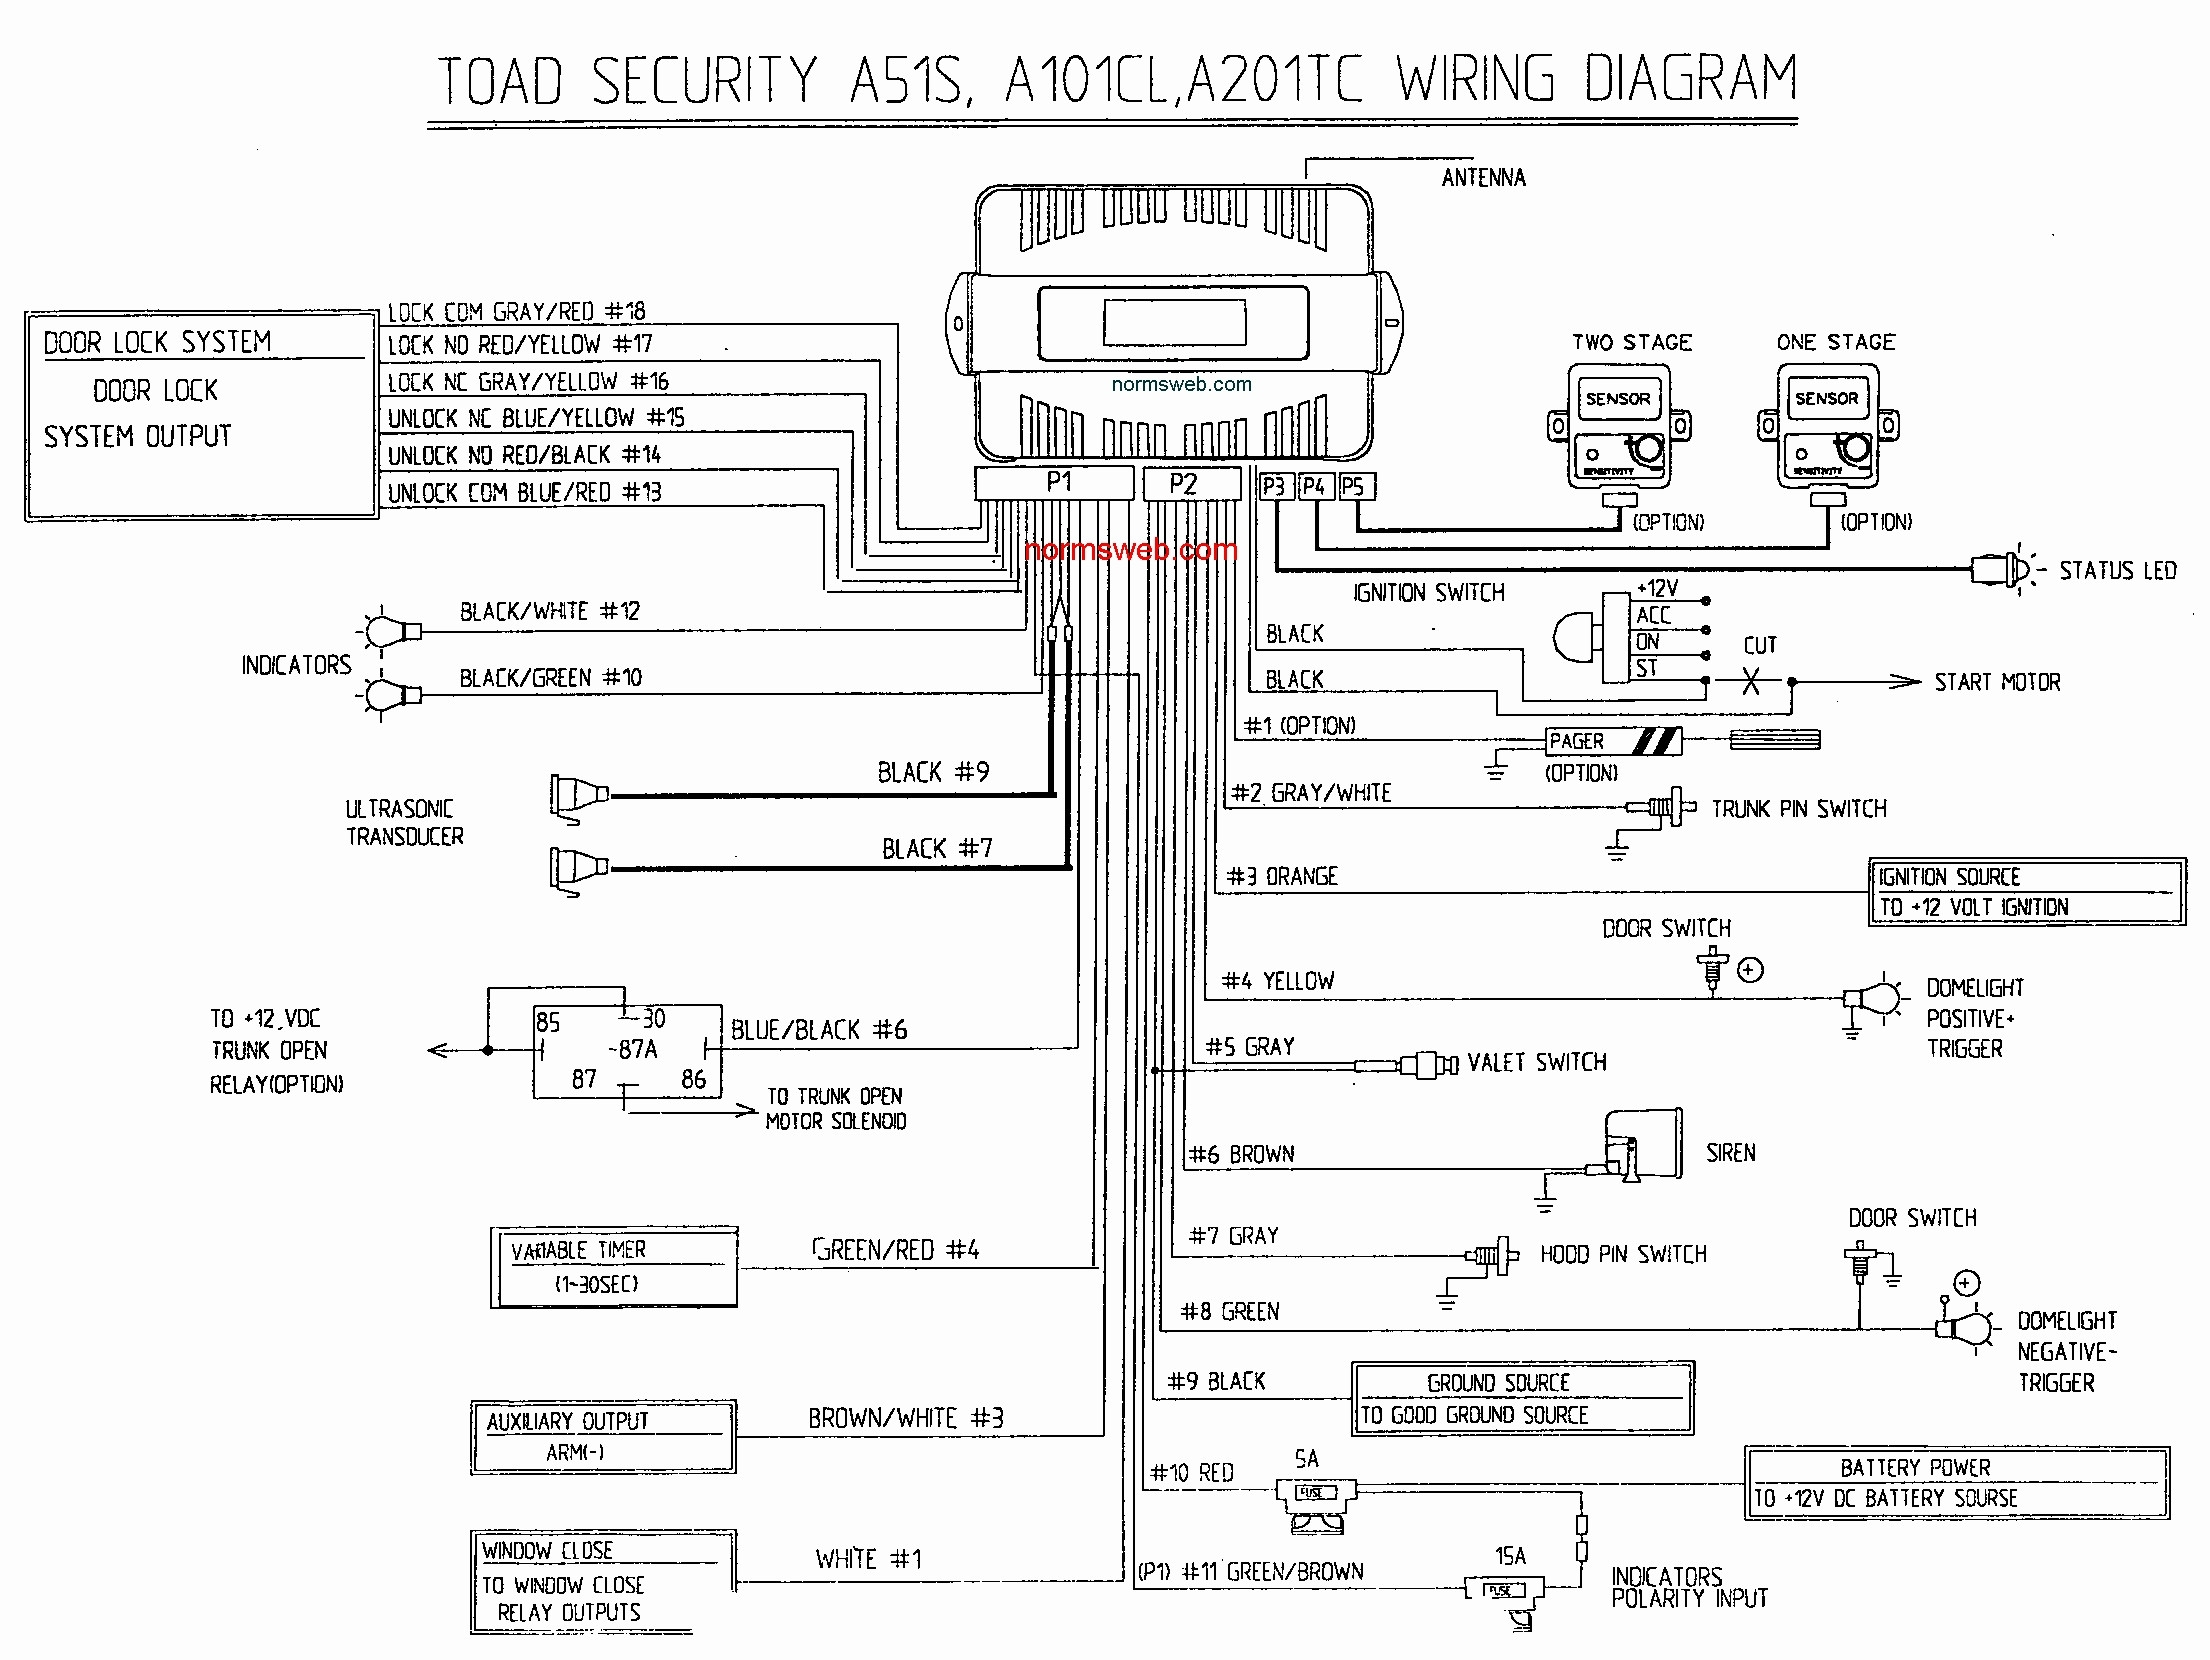 Bulldog Security Alarm Wiring Diagram | Free Wiring Diagram on electronic circuit diagrams, 2004 trailblazer diagrams, bulldog alarms wiring diagrams, bulldog security vehicle diagram, bulldog lock motor wire, bulldog security talking vehicle alarm system, bulldog 791 wiring-diagram, electric life power window diagrams, bulldog keyless entry diagram, ford e 150 parts diagrams, wire rope reeving diagrams, bulldog security remote car starter, bulldog remote starter diagrams,